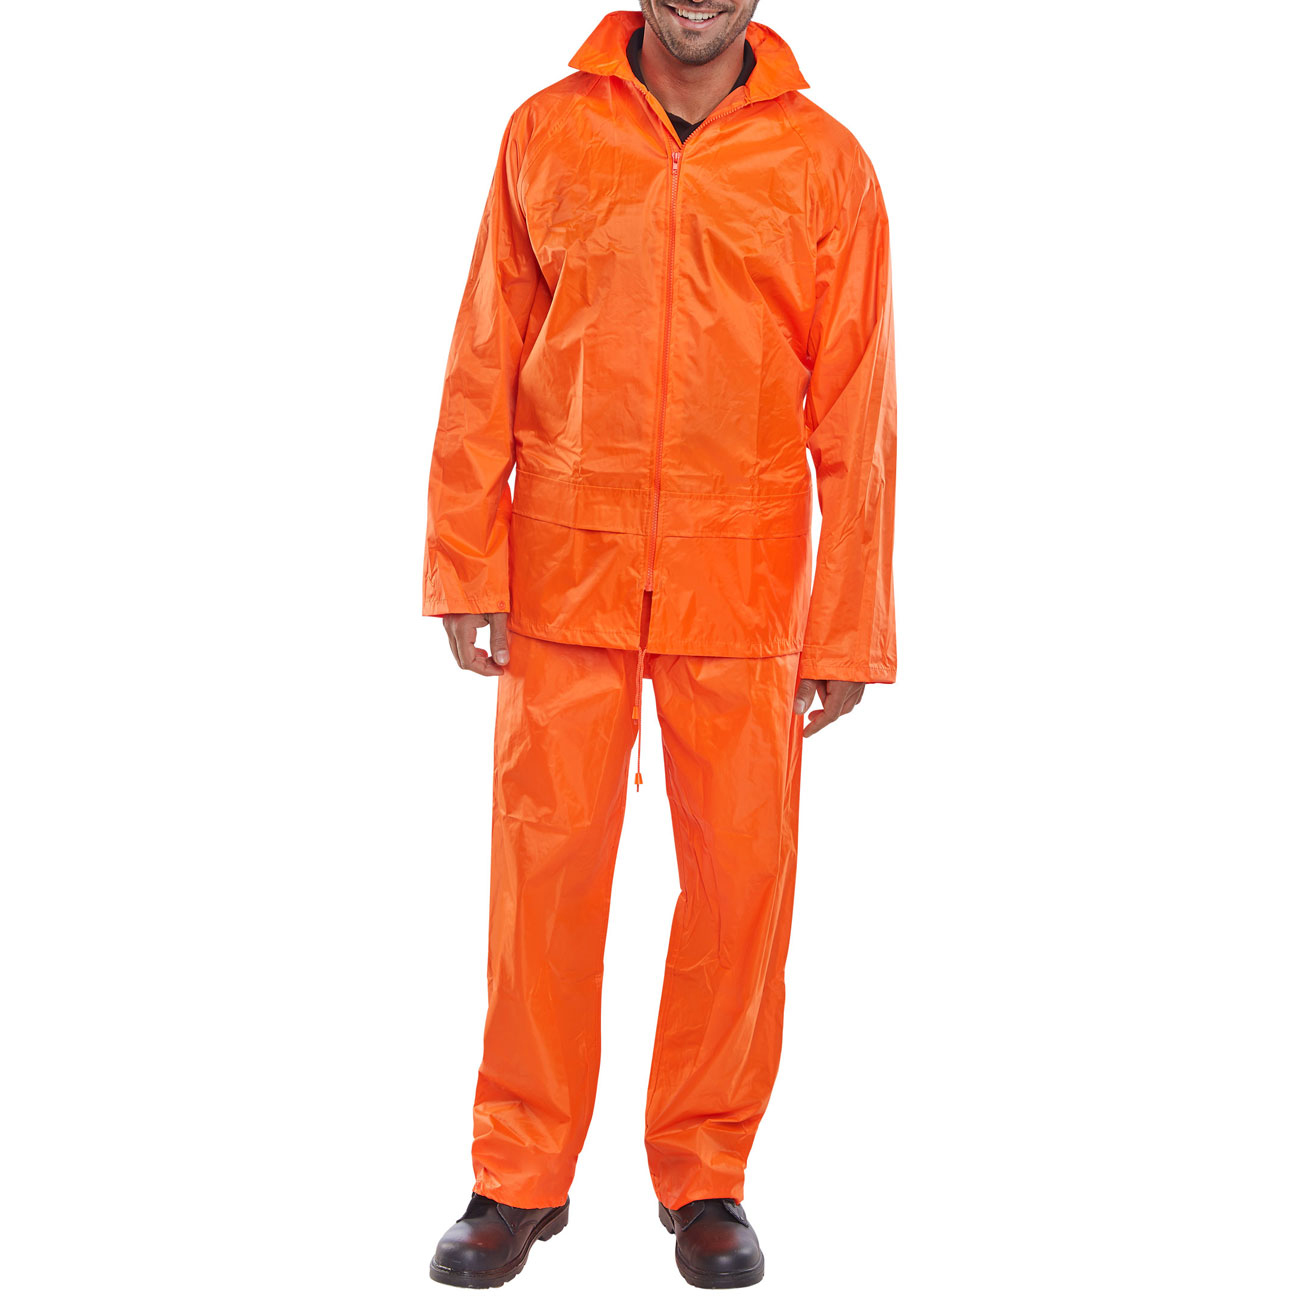 B-Dri Weatherproof Suit Nylon Jacket and Trouser 4XL Orange Ref NBDSOR4XL *Up to 3 Day Leadtime*